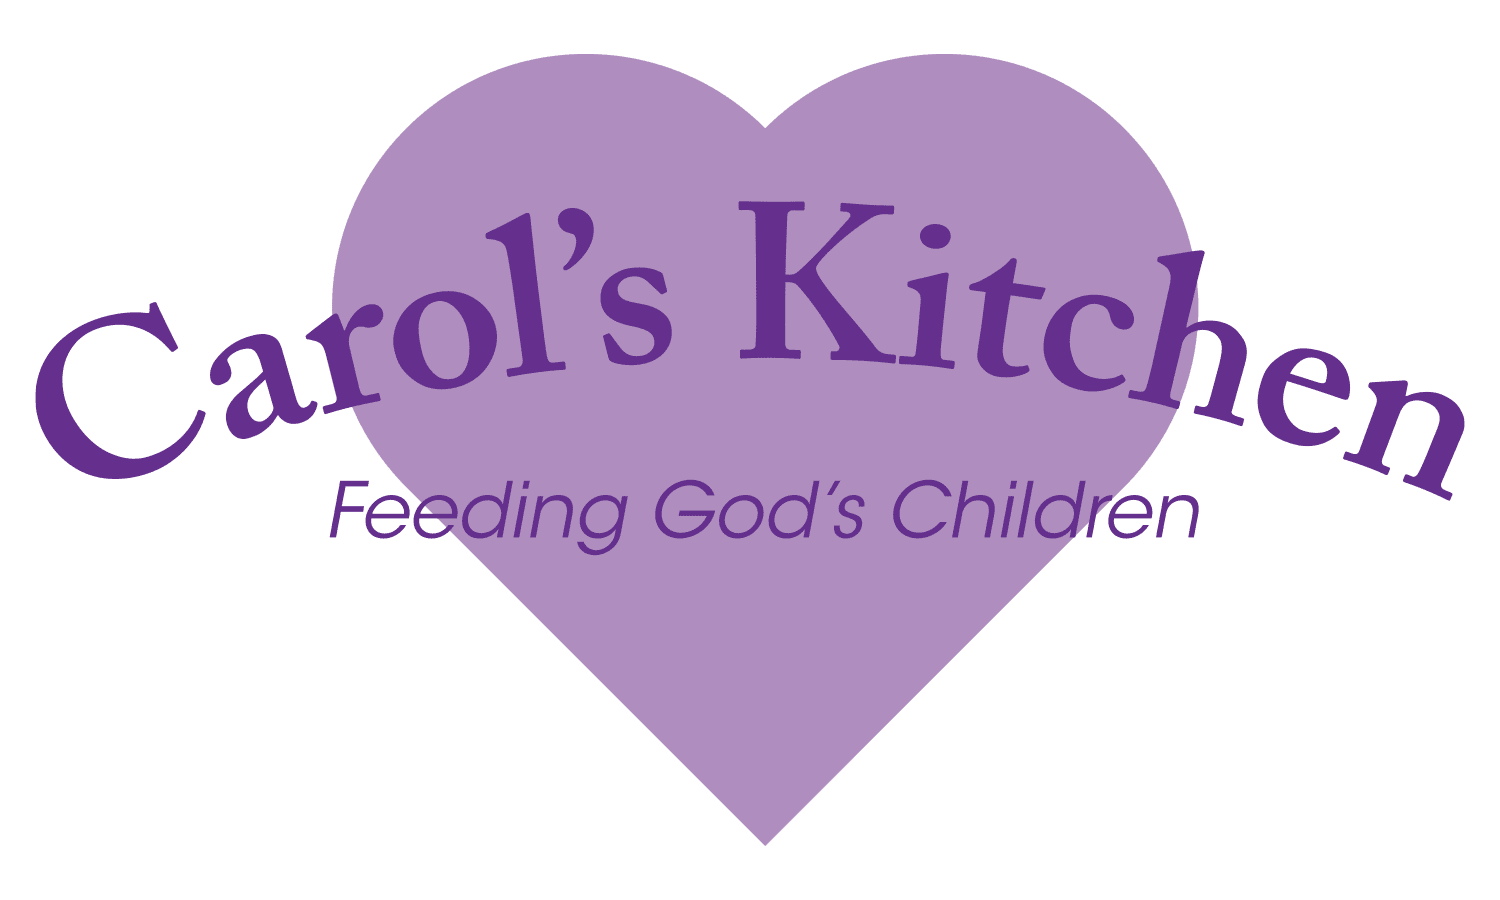 Carol's Kitchen at St. Kateri Tekawitha Catholic Church